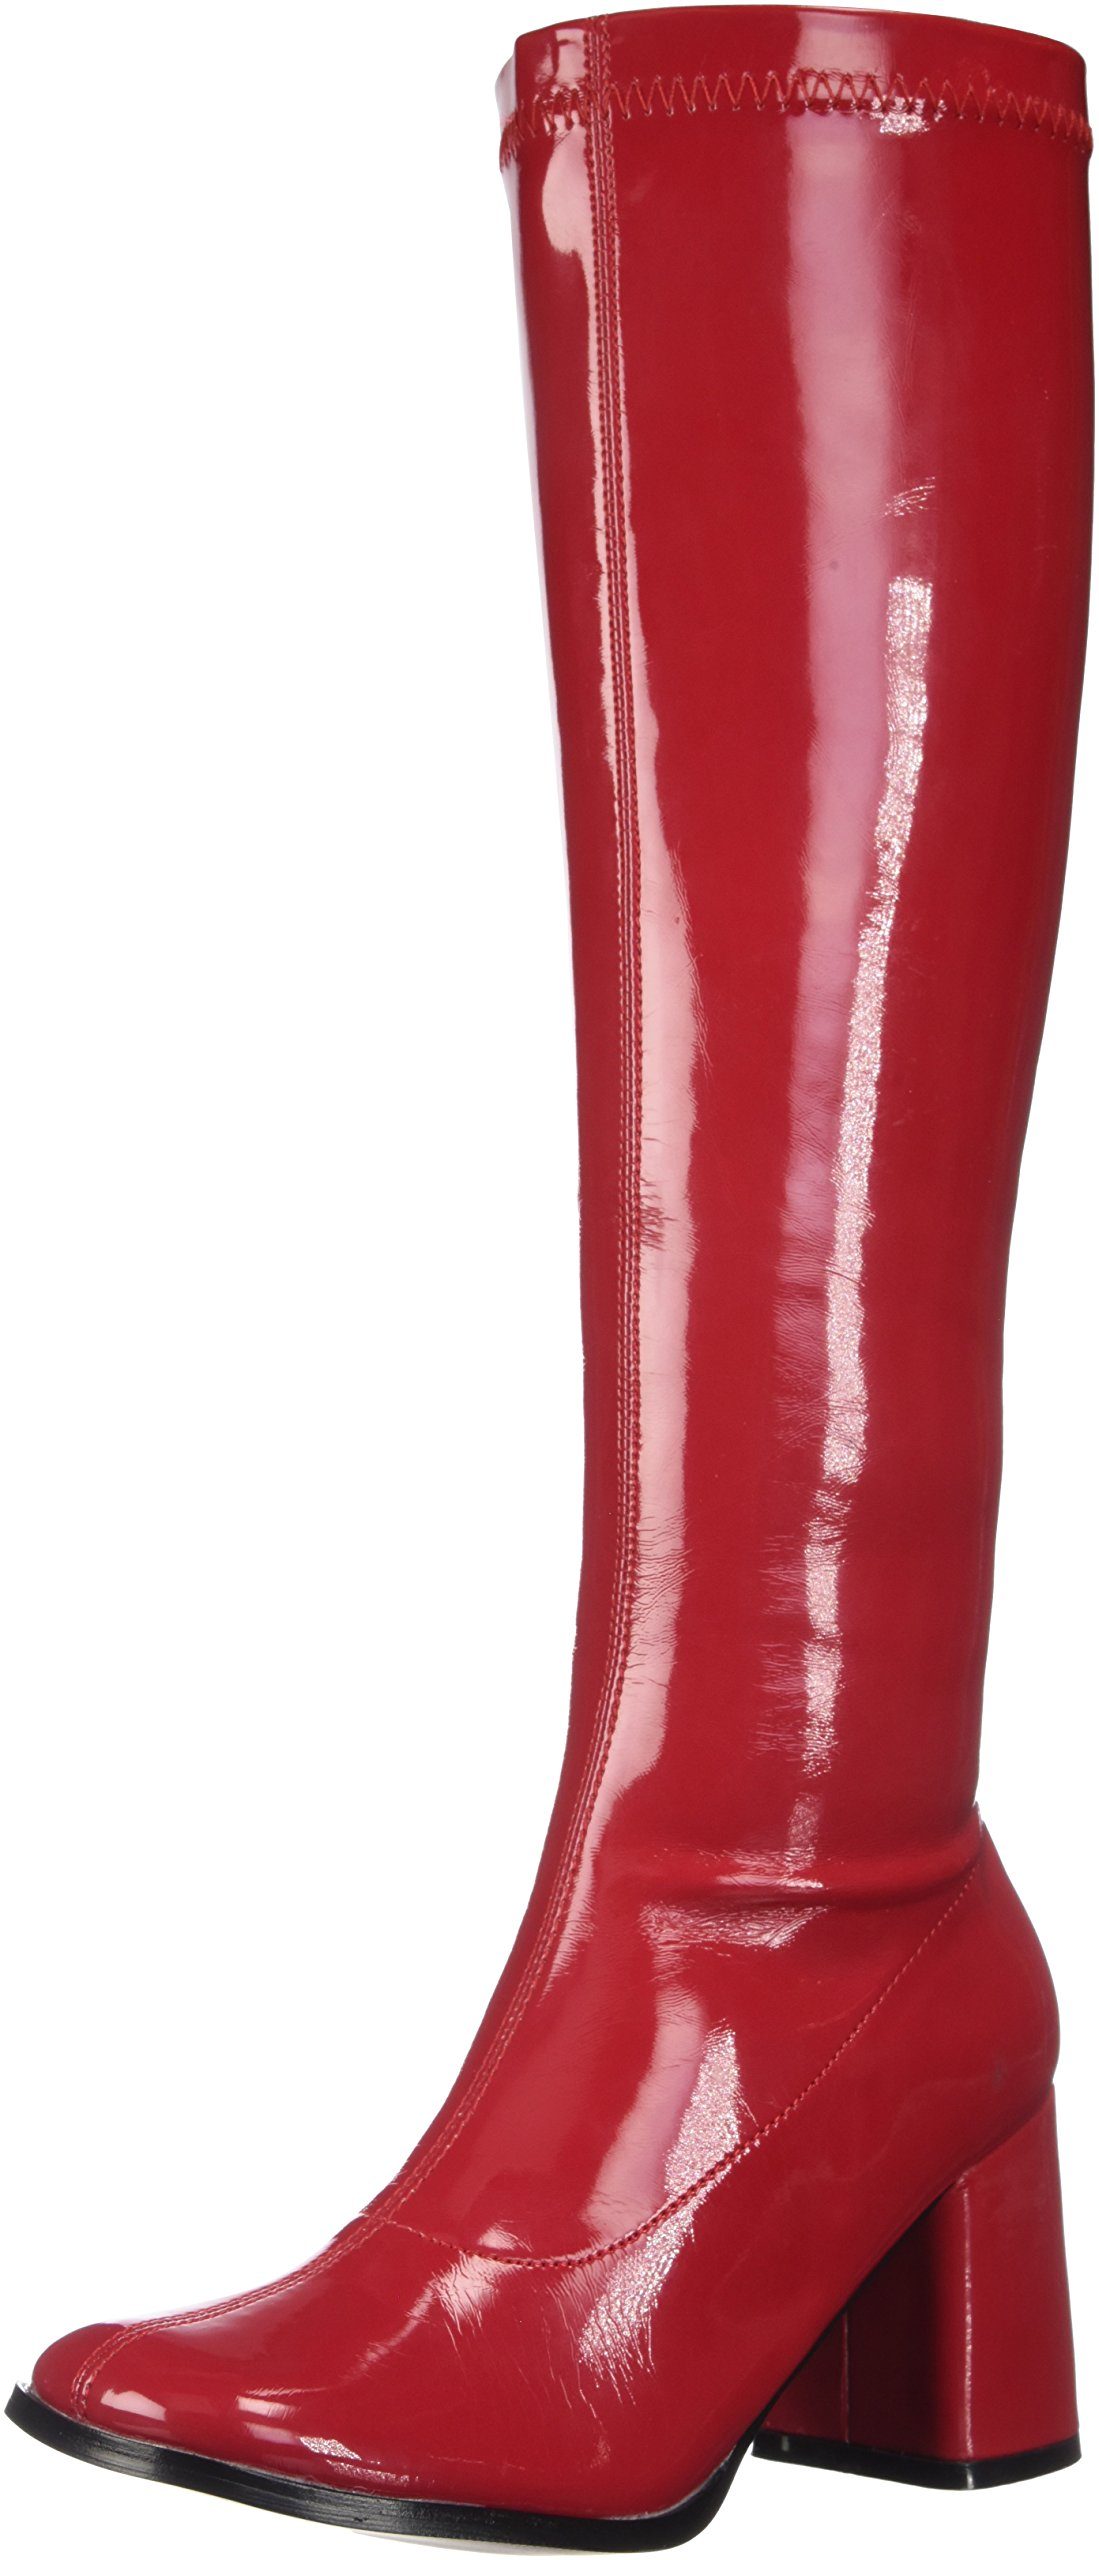 Funtasma Women's Gogo300hq/Br Boot, Black/Red Patent, 9 M US